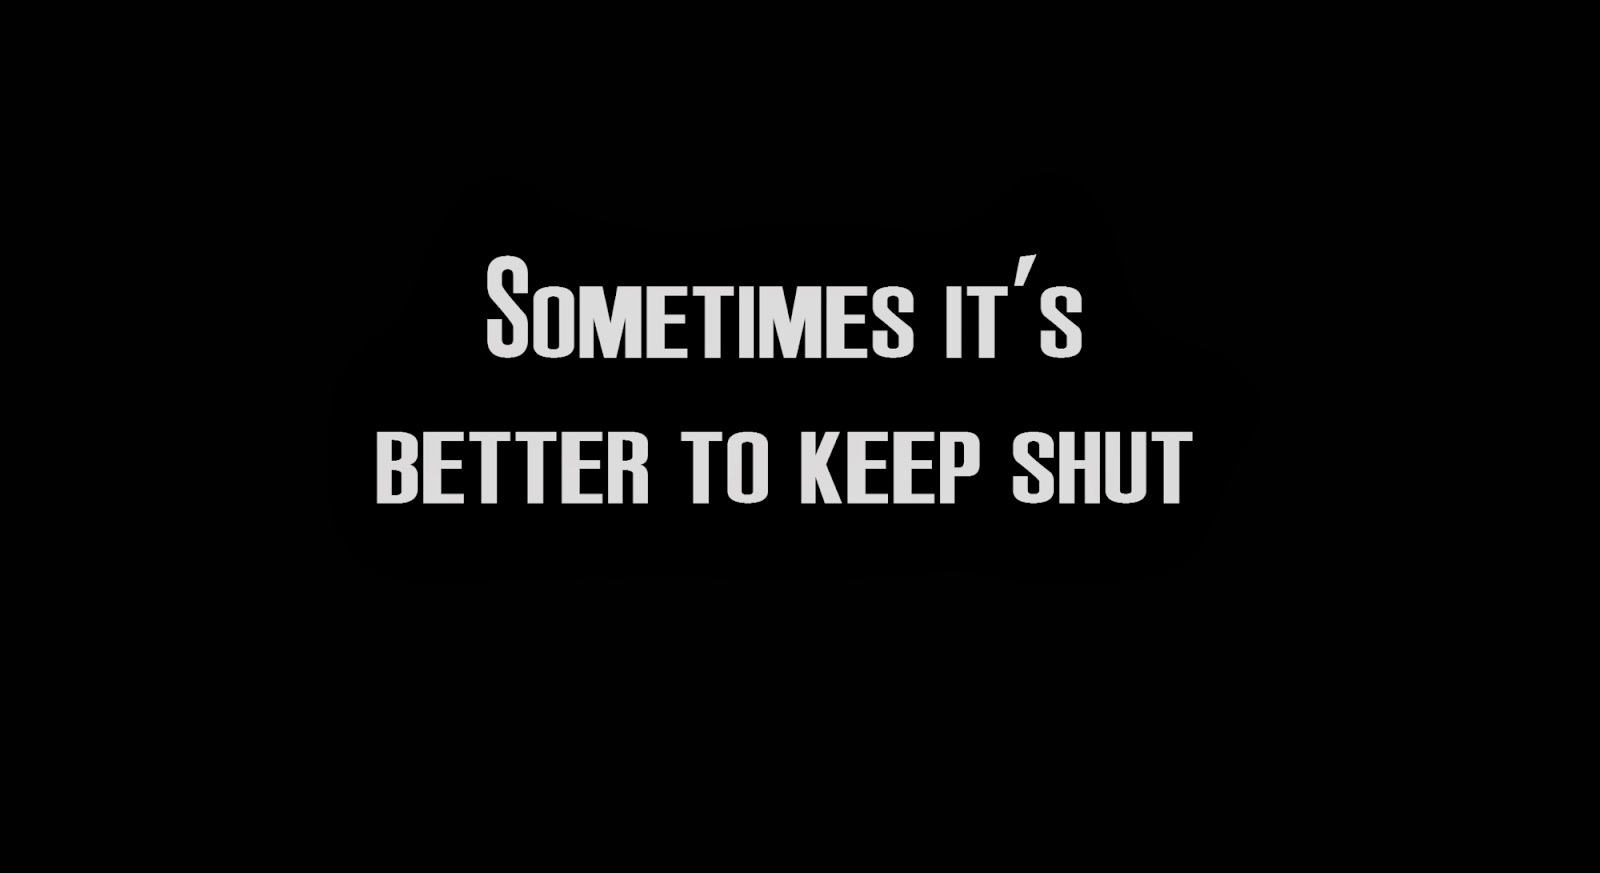 Sometimes it's better to keep shut